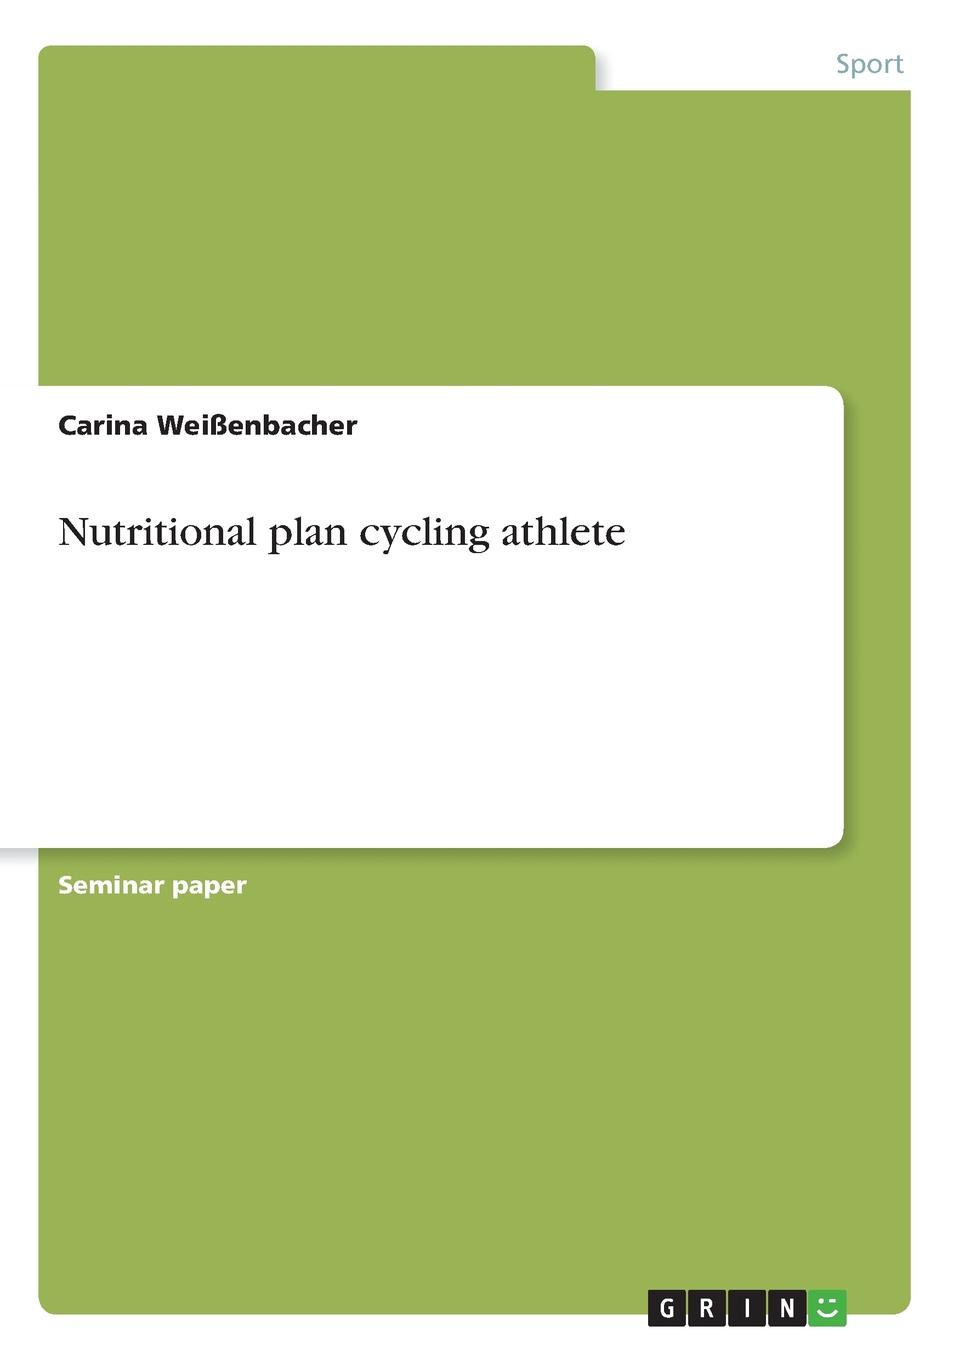 Carina Weißenbacher Nutritional plan cycling athlete available from 10 11 dc cycling jersey edyft03274 kvj1